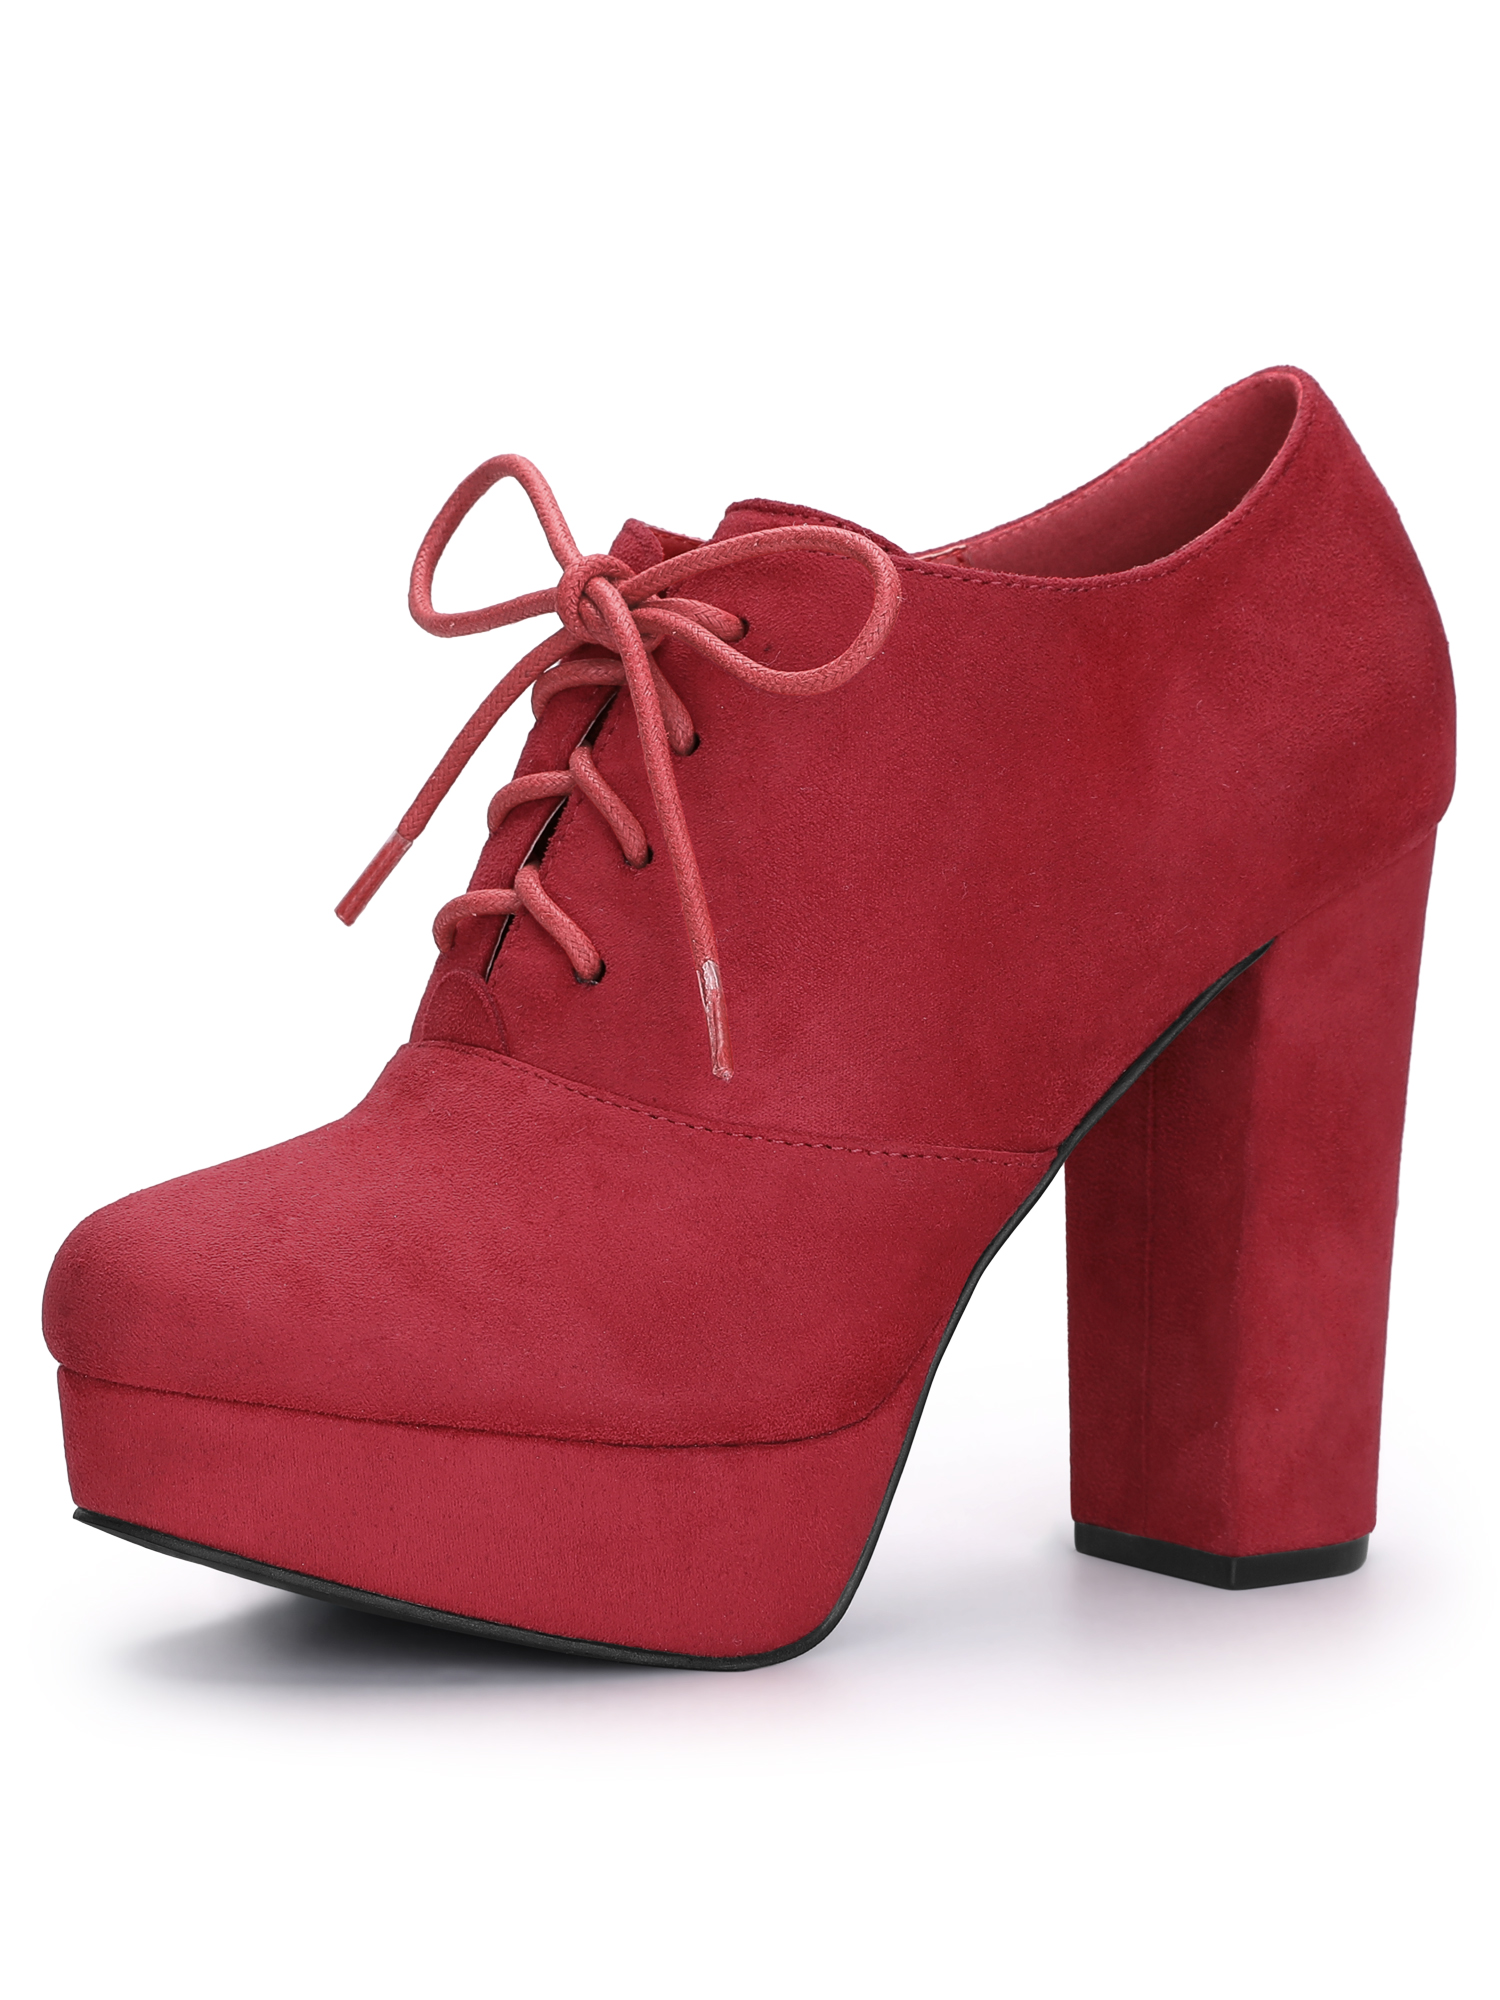 Women's Platform Block Heel Lace Up Ankle Boots Red (Size 10)